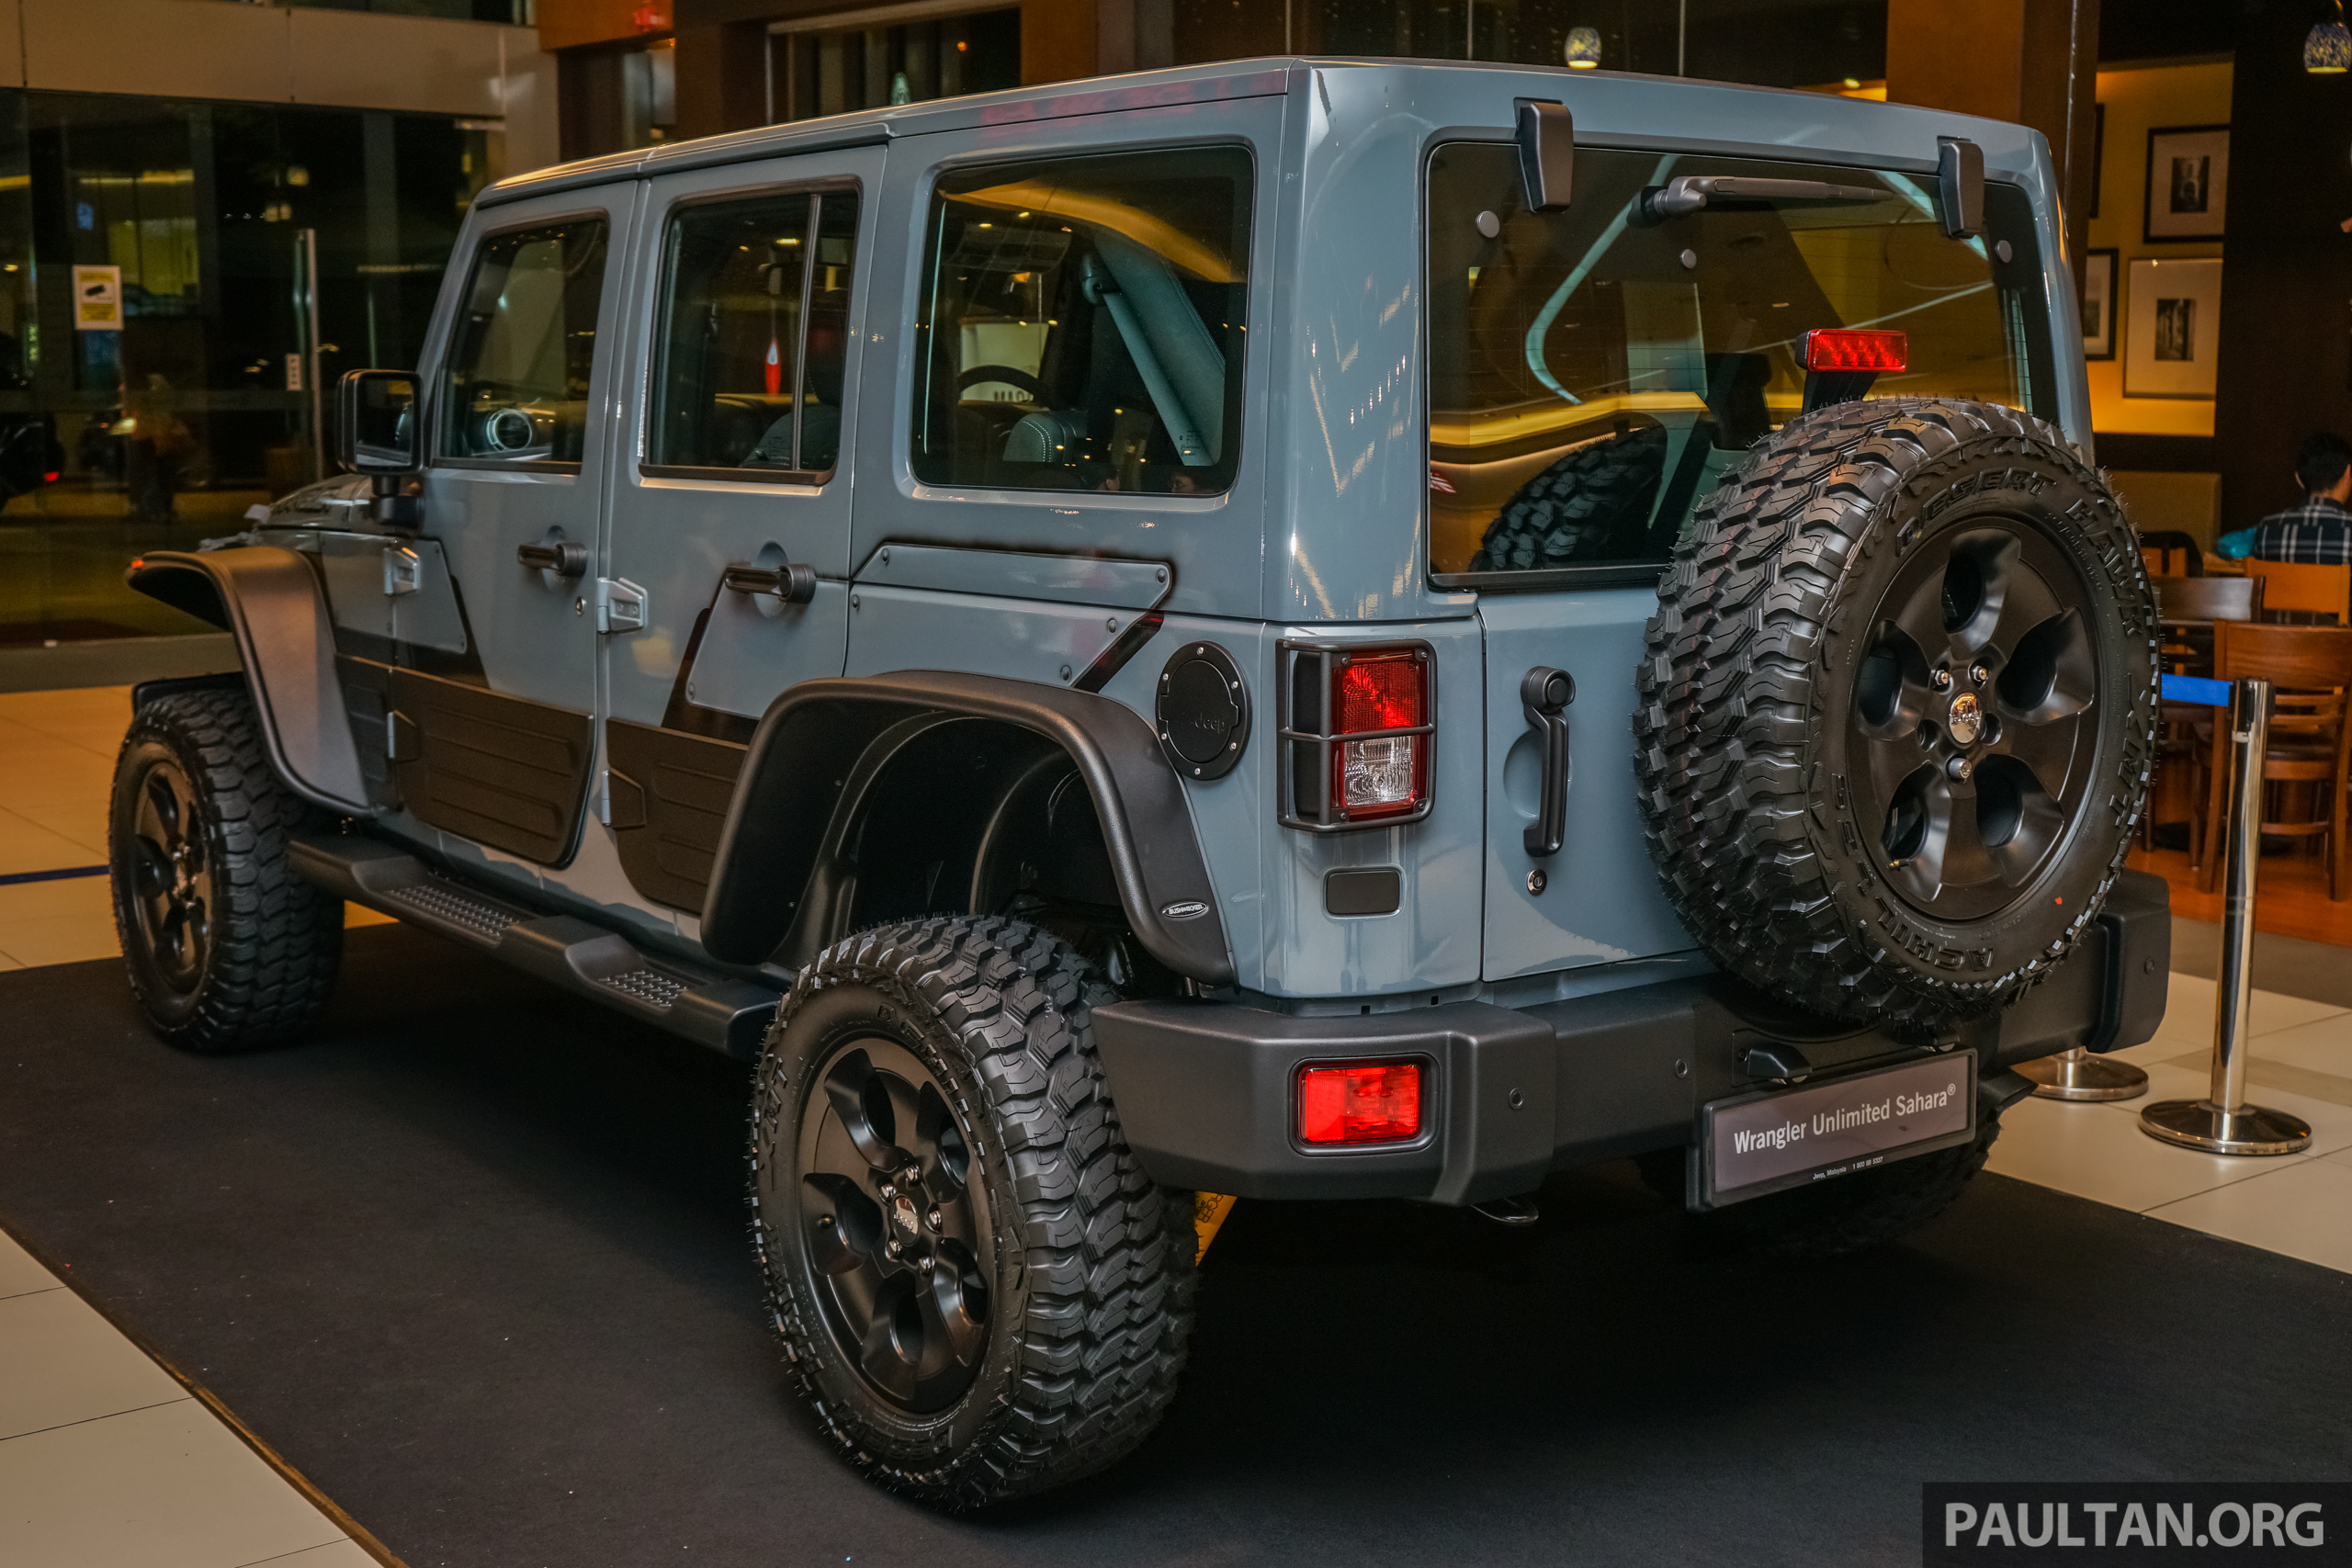 Jeep Wrangler Unlimited Sahara Batwrangler One Off Mopar Accessories Custom